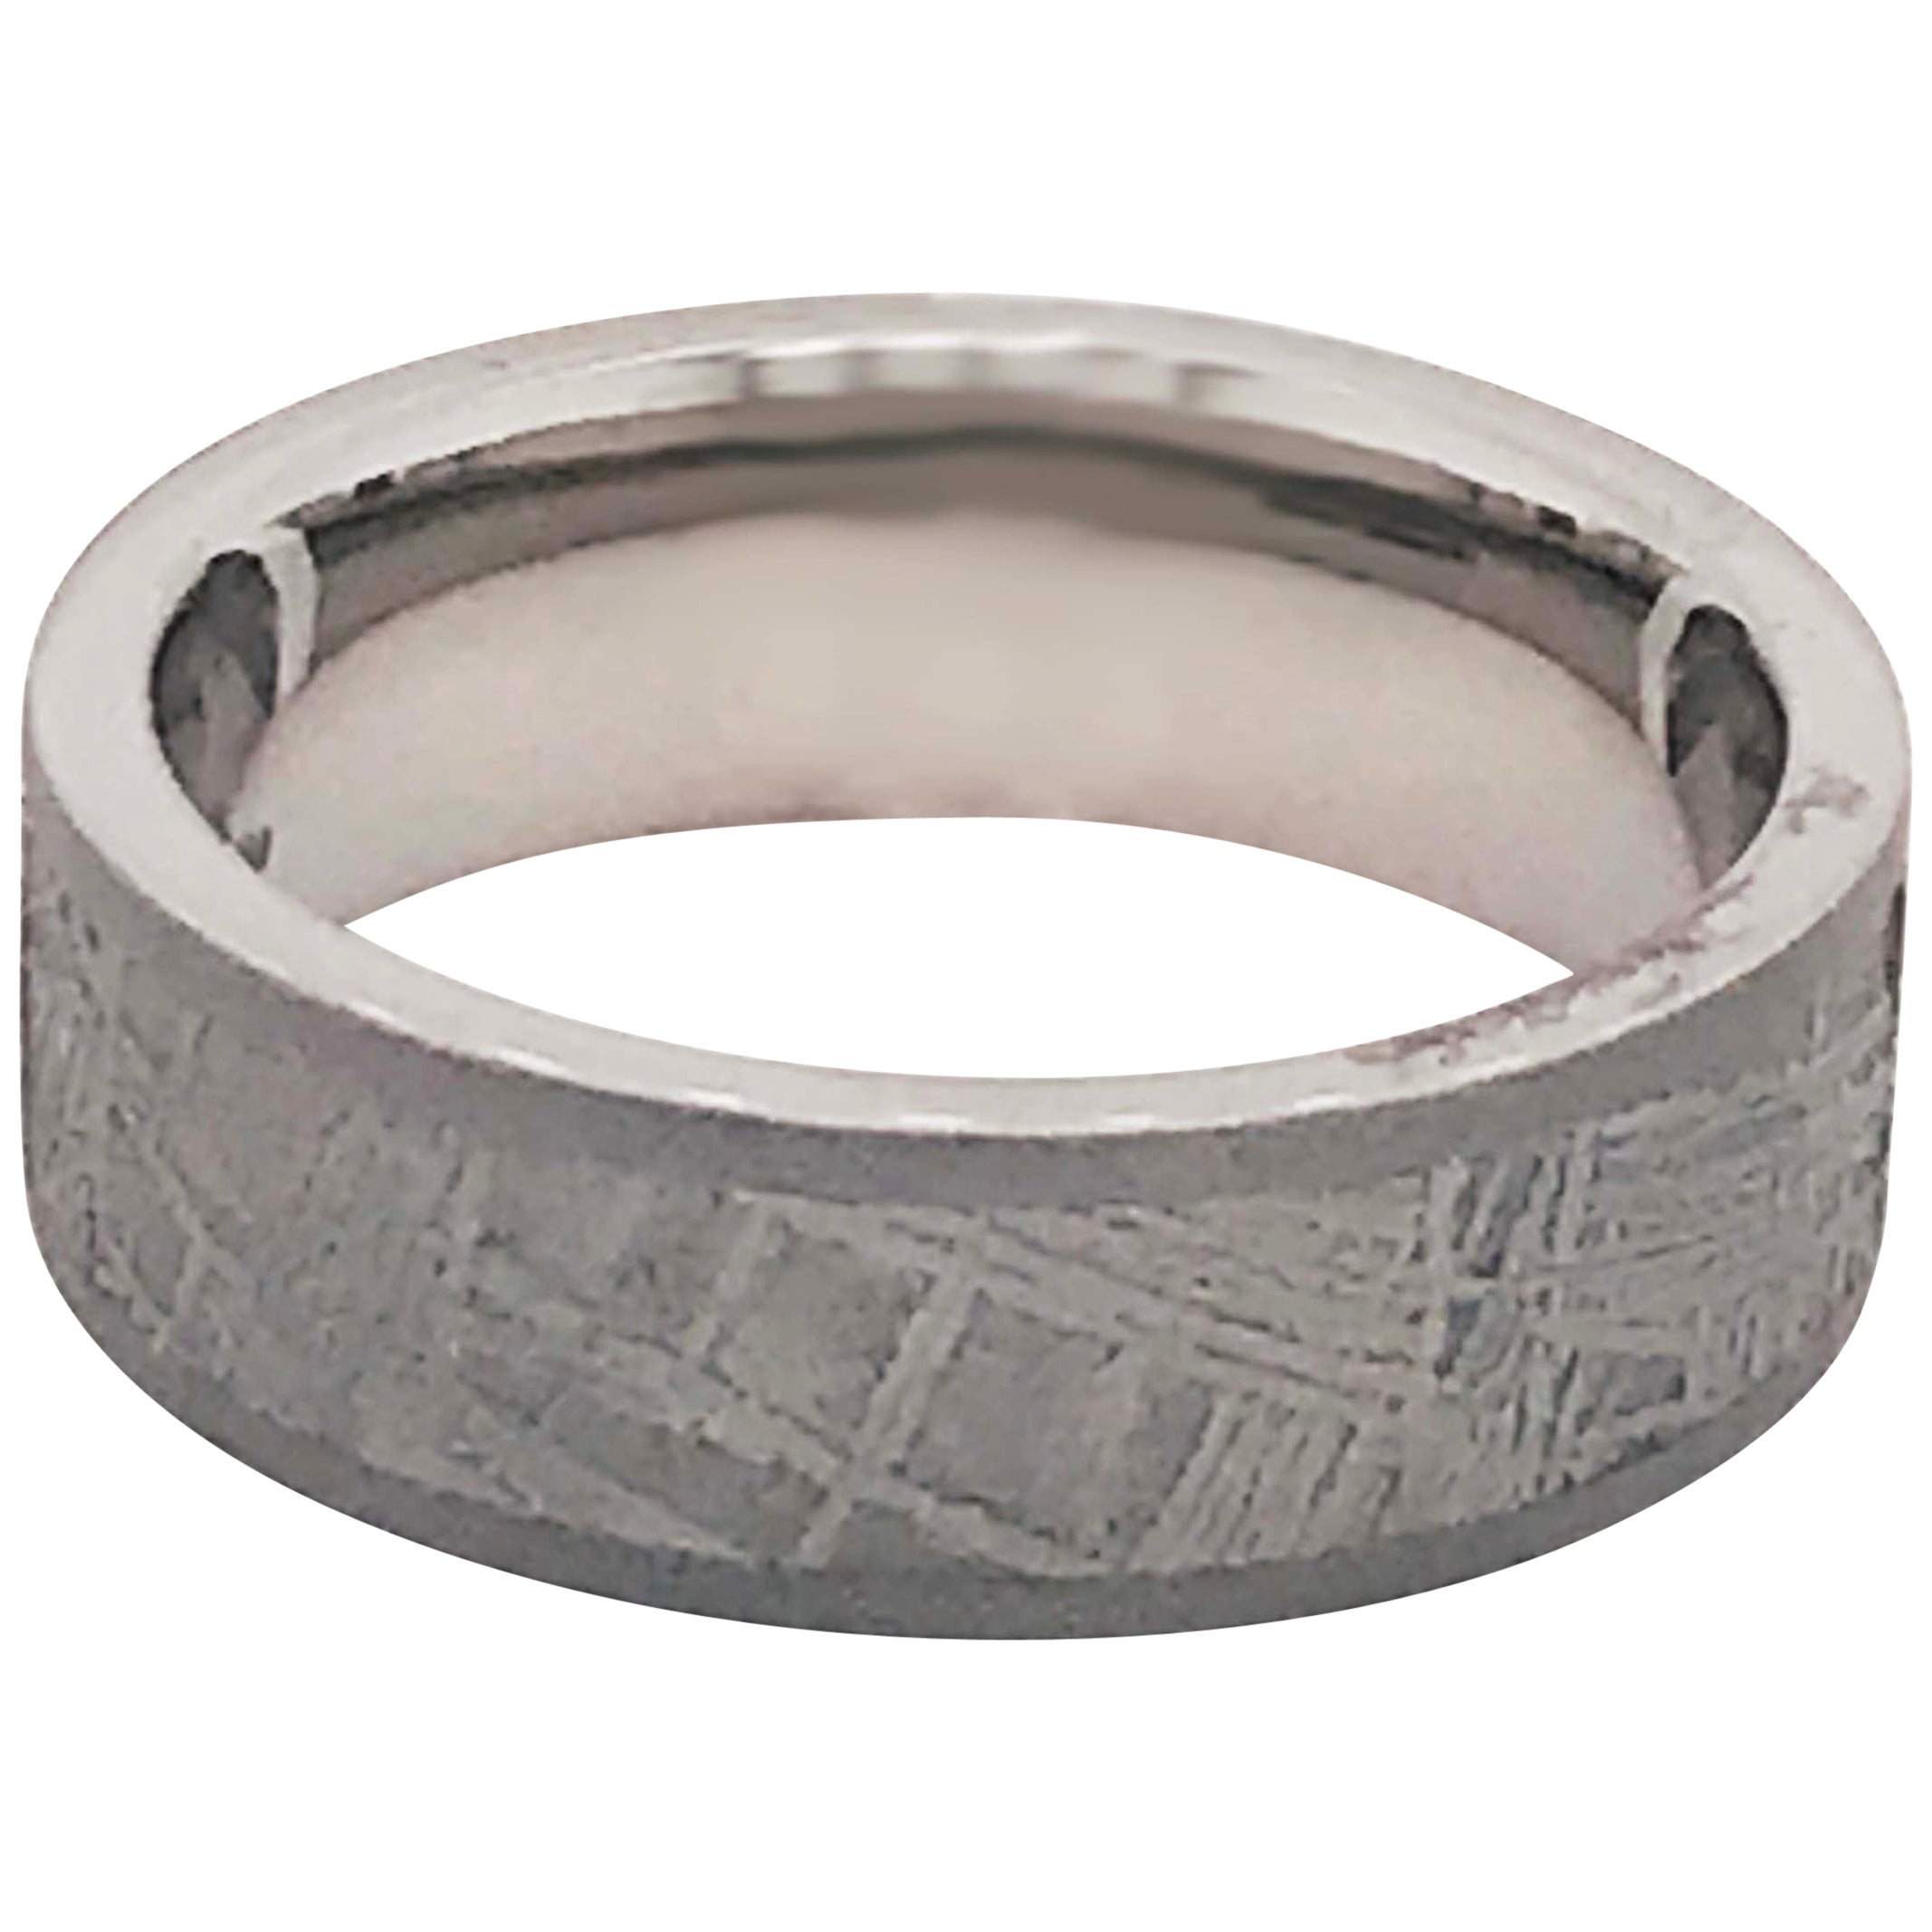 Meteorite Titanium Men's Band, Distressed Finish Comfort Fit Wedding Ring, Band